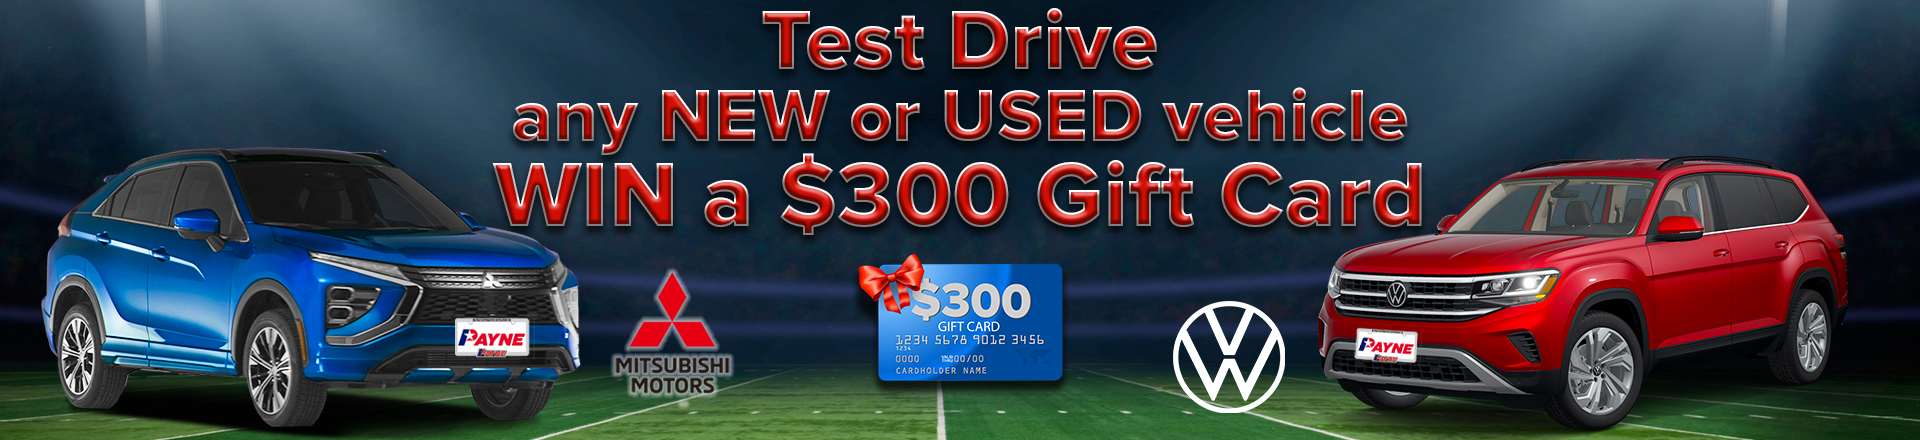 Test Drive to WIN